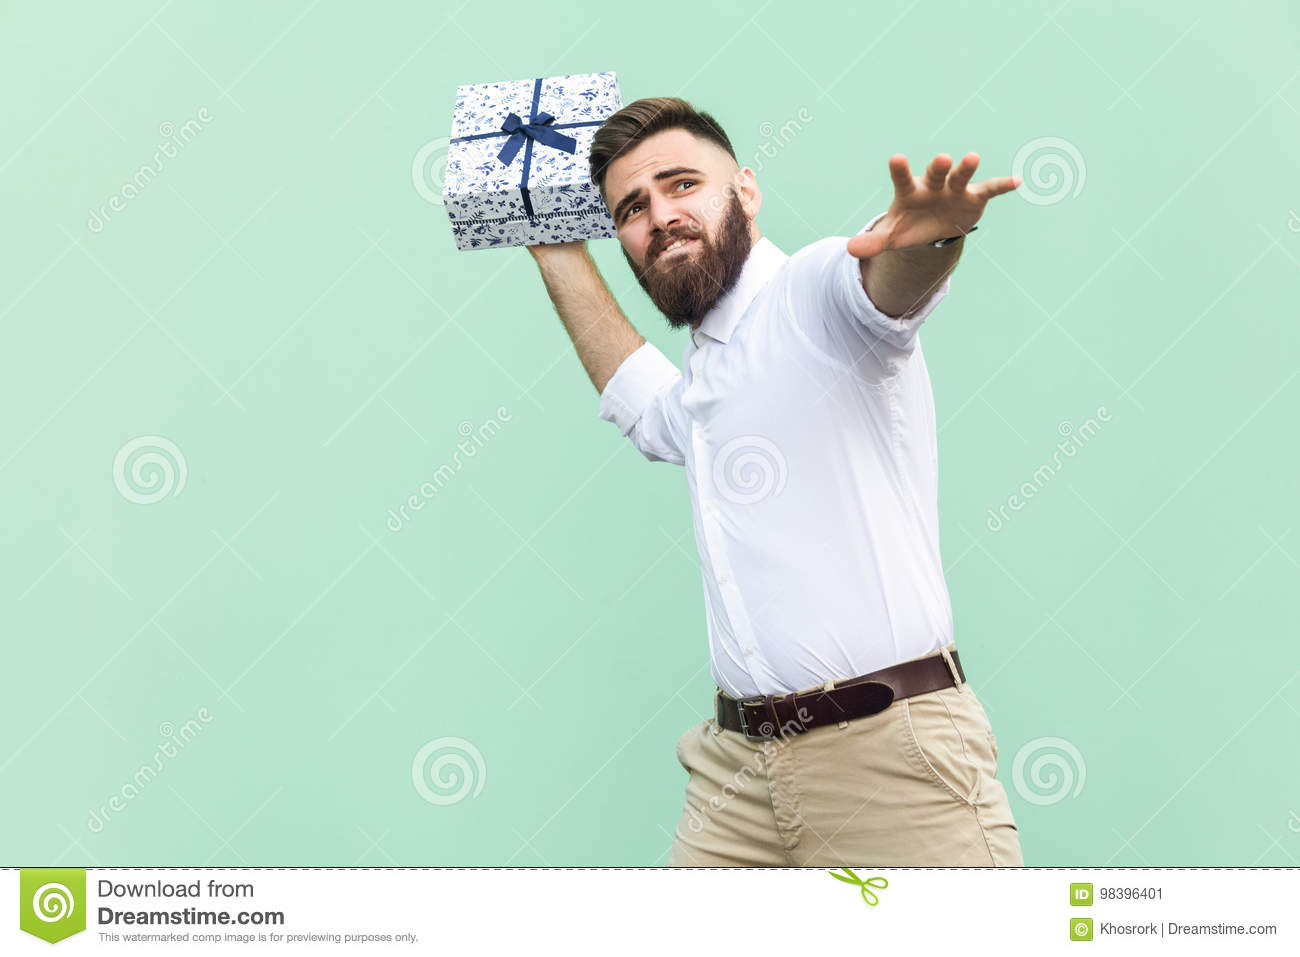 Catch your gift! Young adult man swung and wants to throw off your gift box, isolated on light green background.